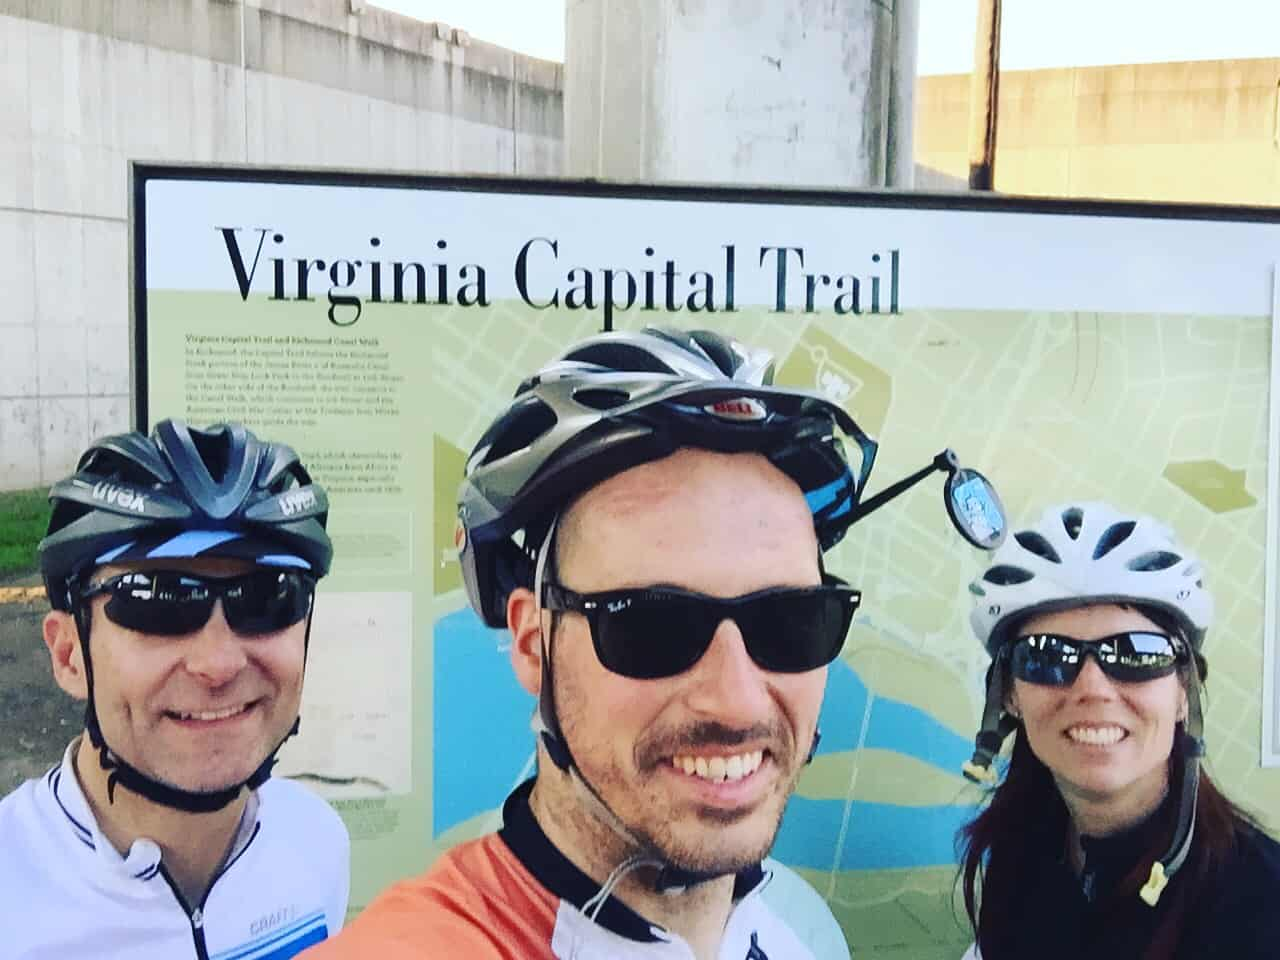 Wassup Richmond, Virginia! Rode the length of the amazing Virginia Capital Trail today!!! 52 miles of sweet off road bike path! This trail didn't exist in 2005! #biketour #biketouring #virginialcapitaltrail #transamerica2016 #? #smugglinggrapes #80mileday